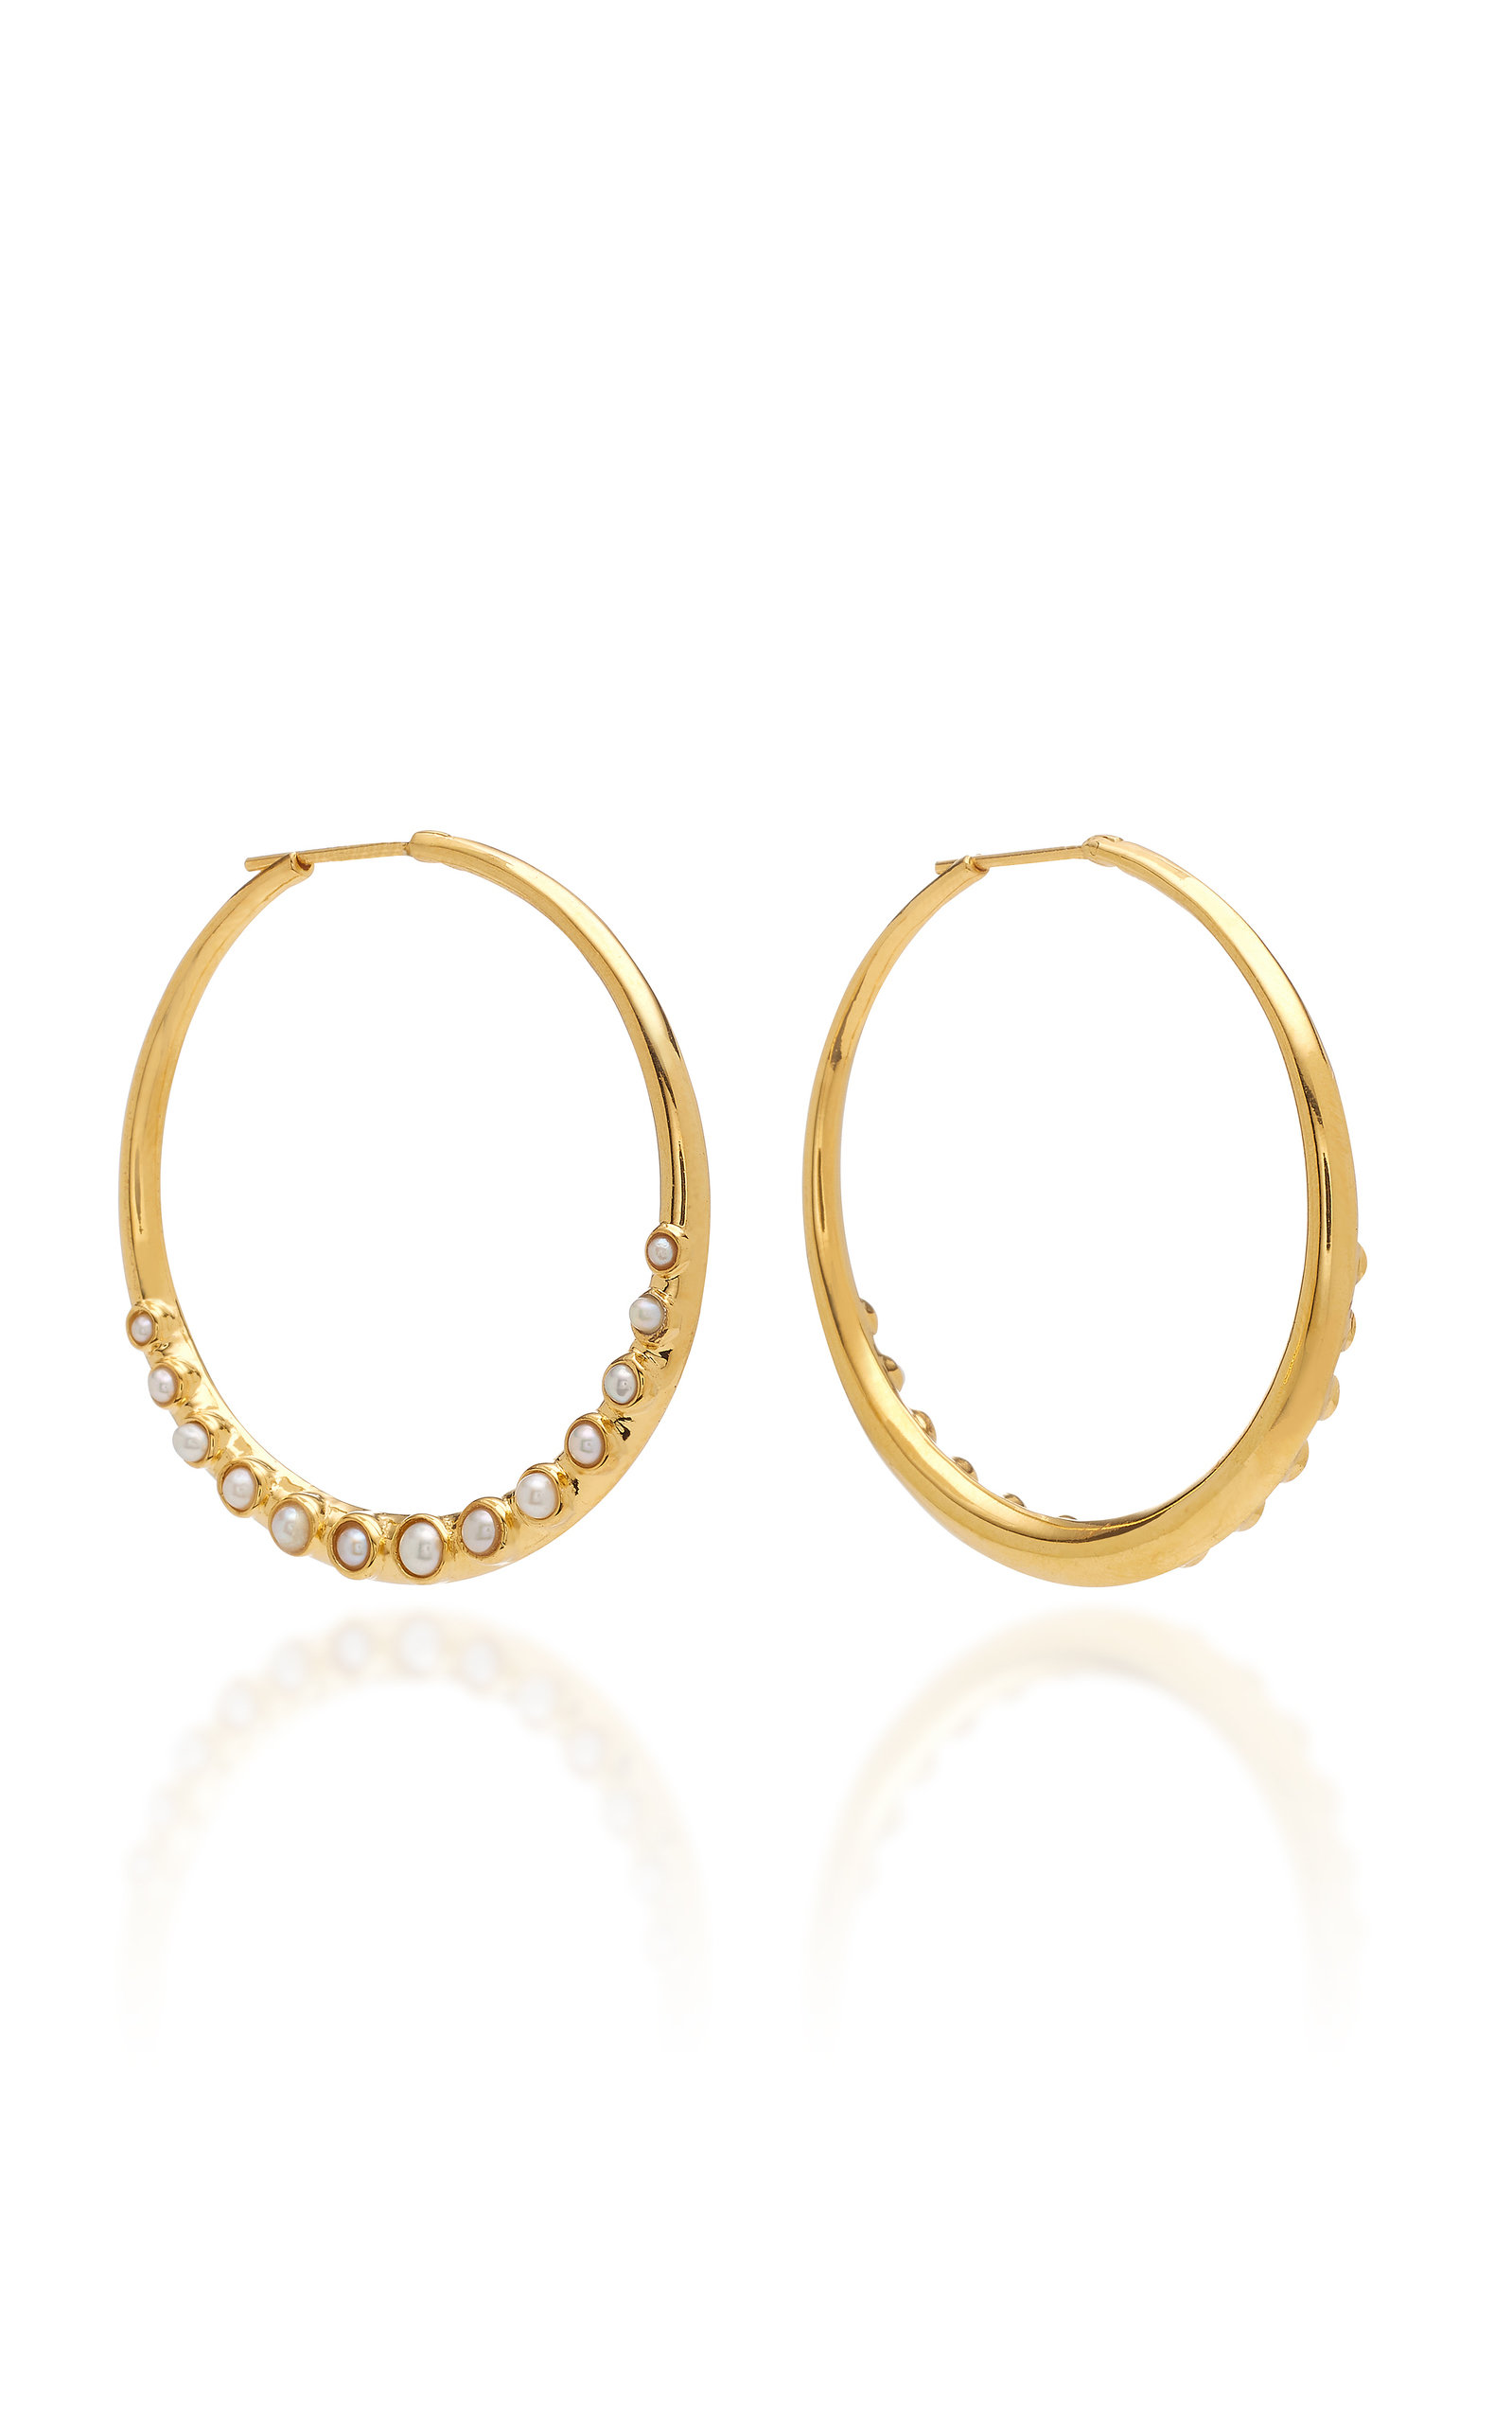 THEODORA WARRE CABOCHON PEARL EMBELLISHED GOLD-PLATED STERLING SILVER HOOP EARRINGS.